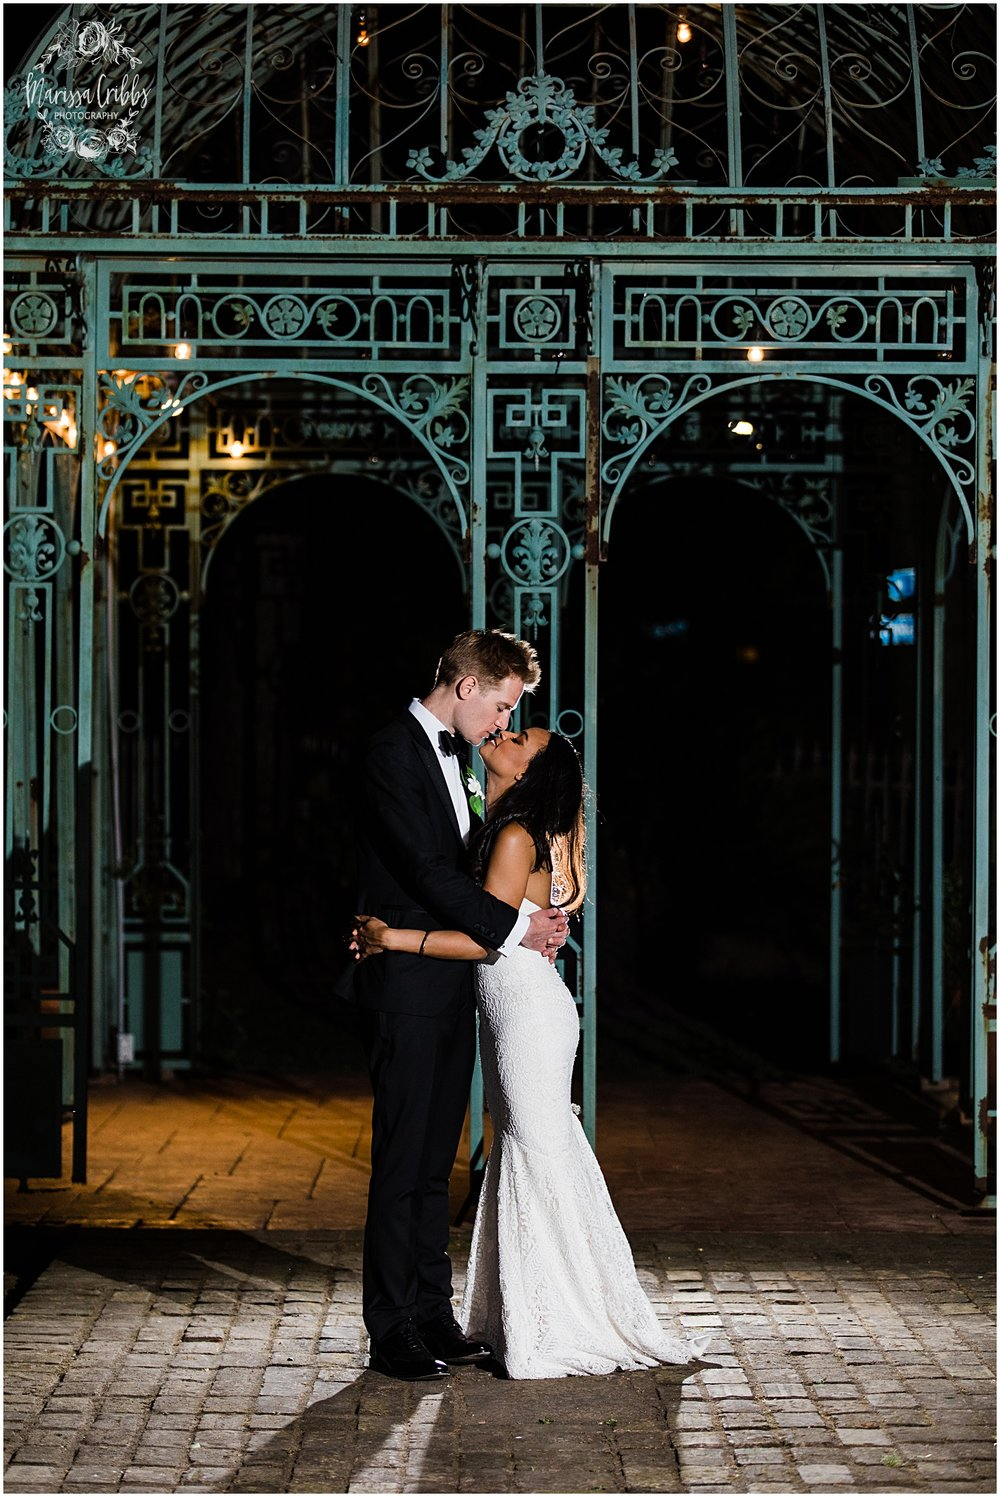 NEW ORLEANS WEDDING | BENACHI HOUSE | SARAH & MICHAEL | MARISSA CRIBBS PHOTOGRAPHY_4525.jpg